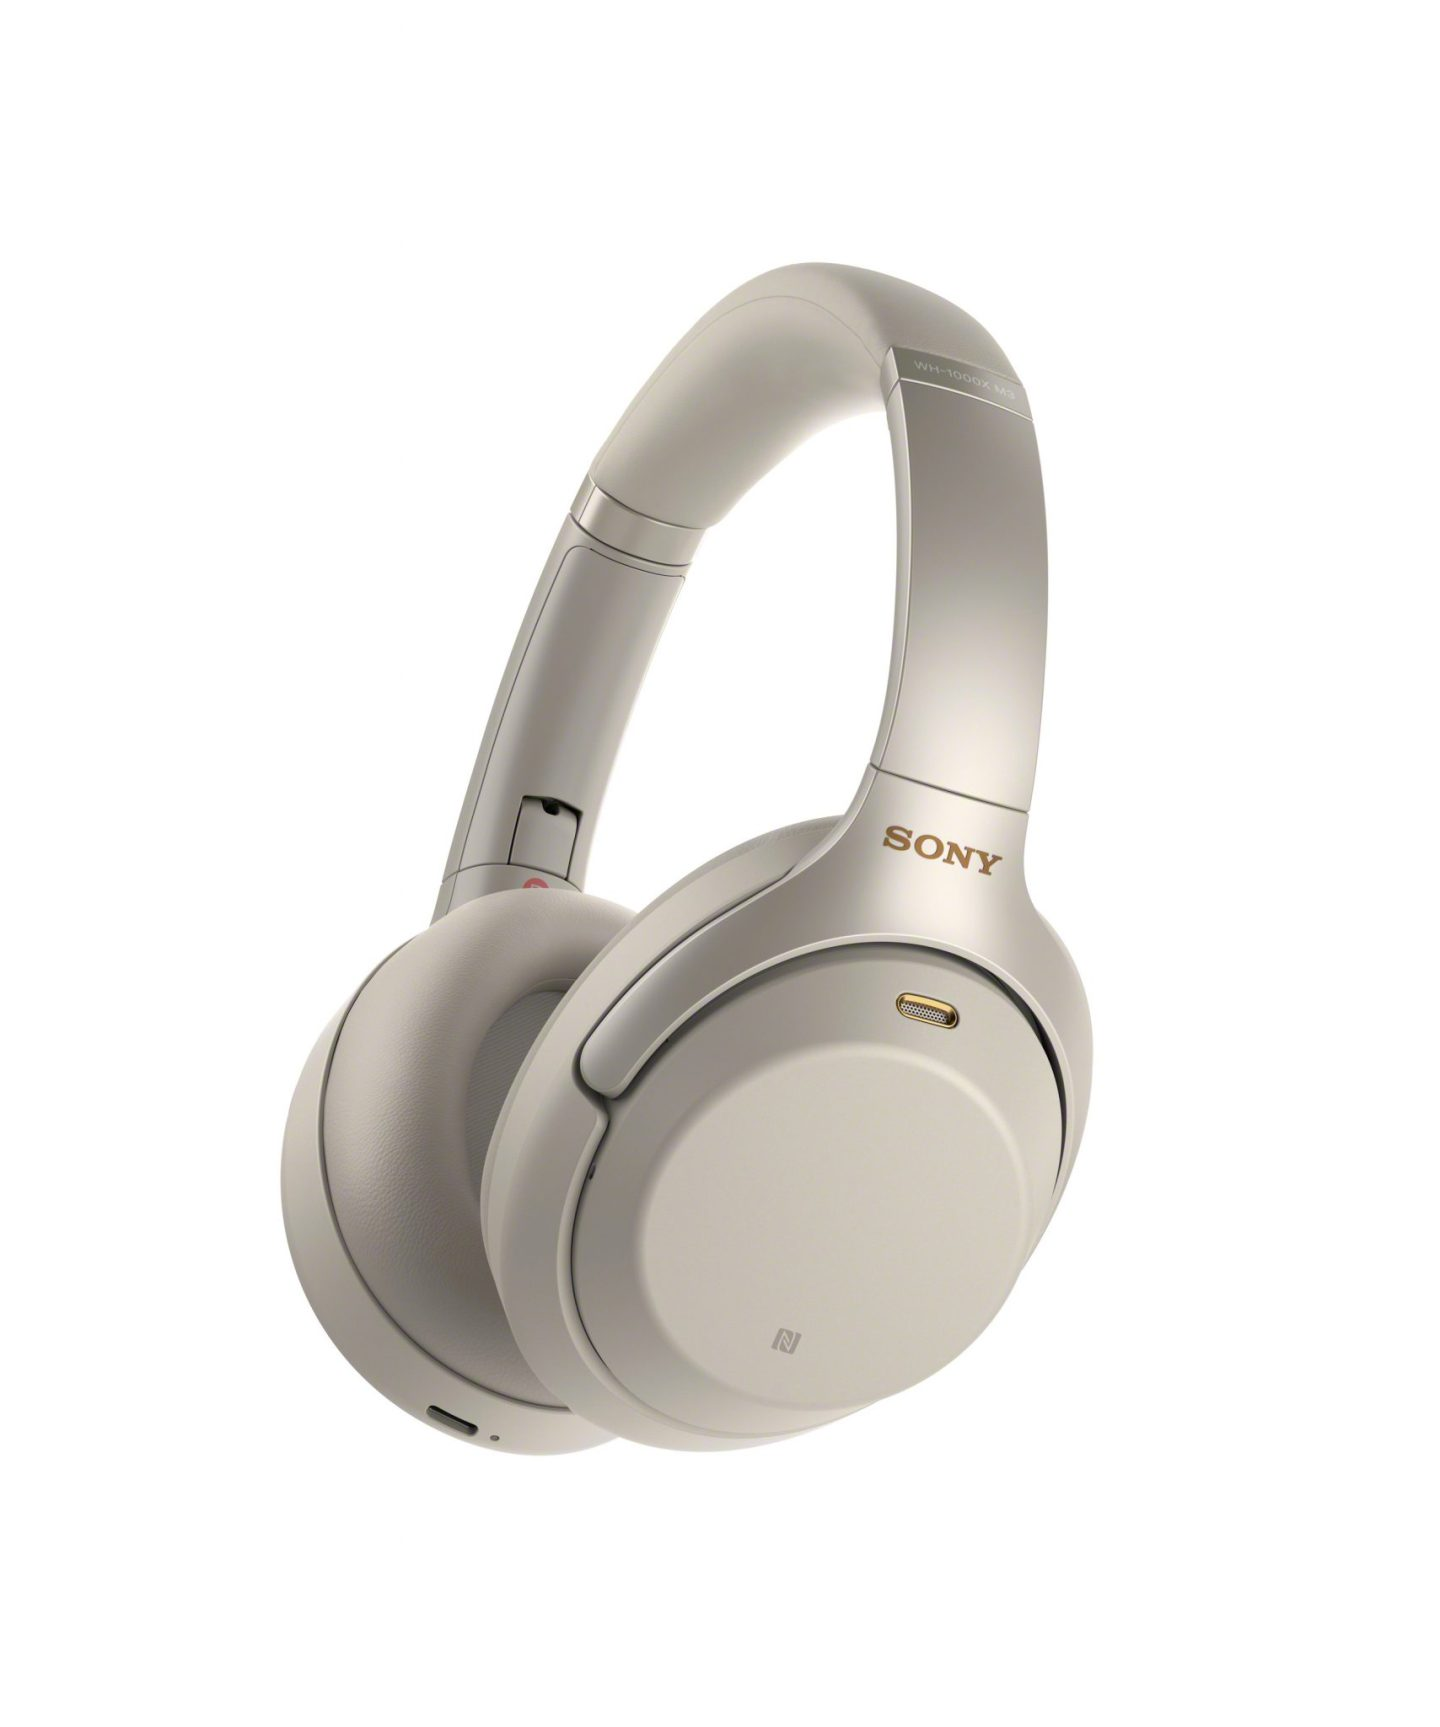 Sony Noise Canceling Headphones In White